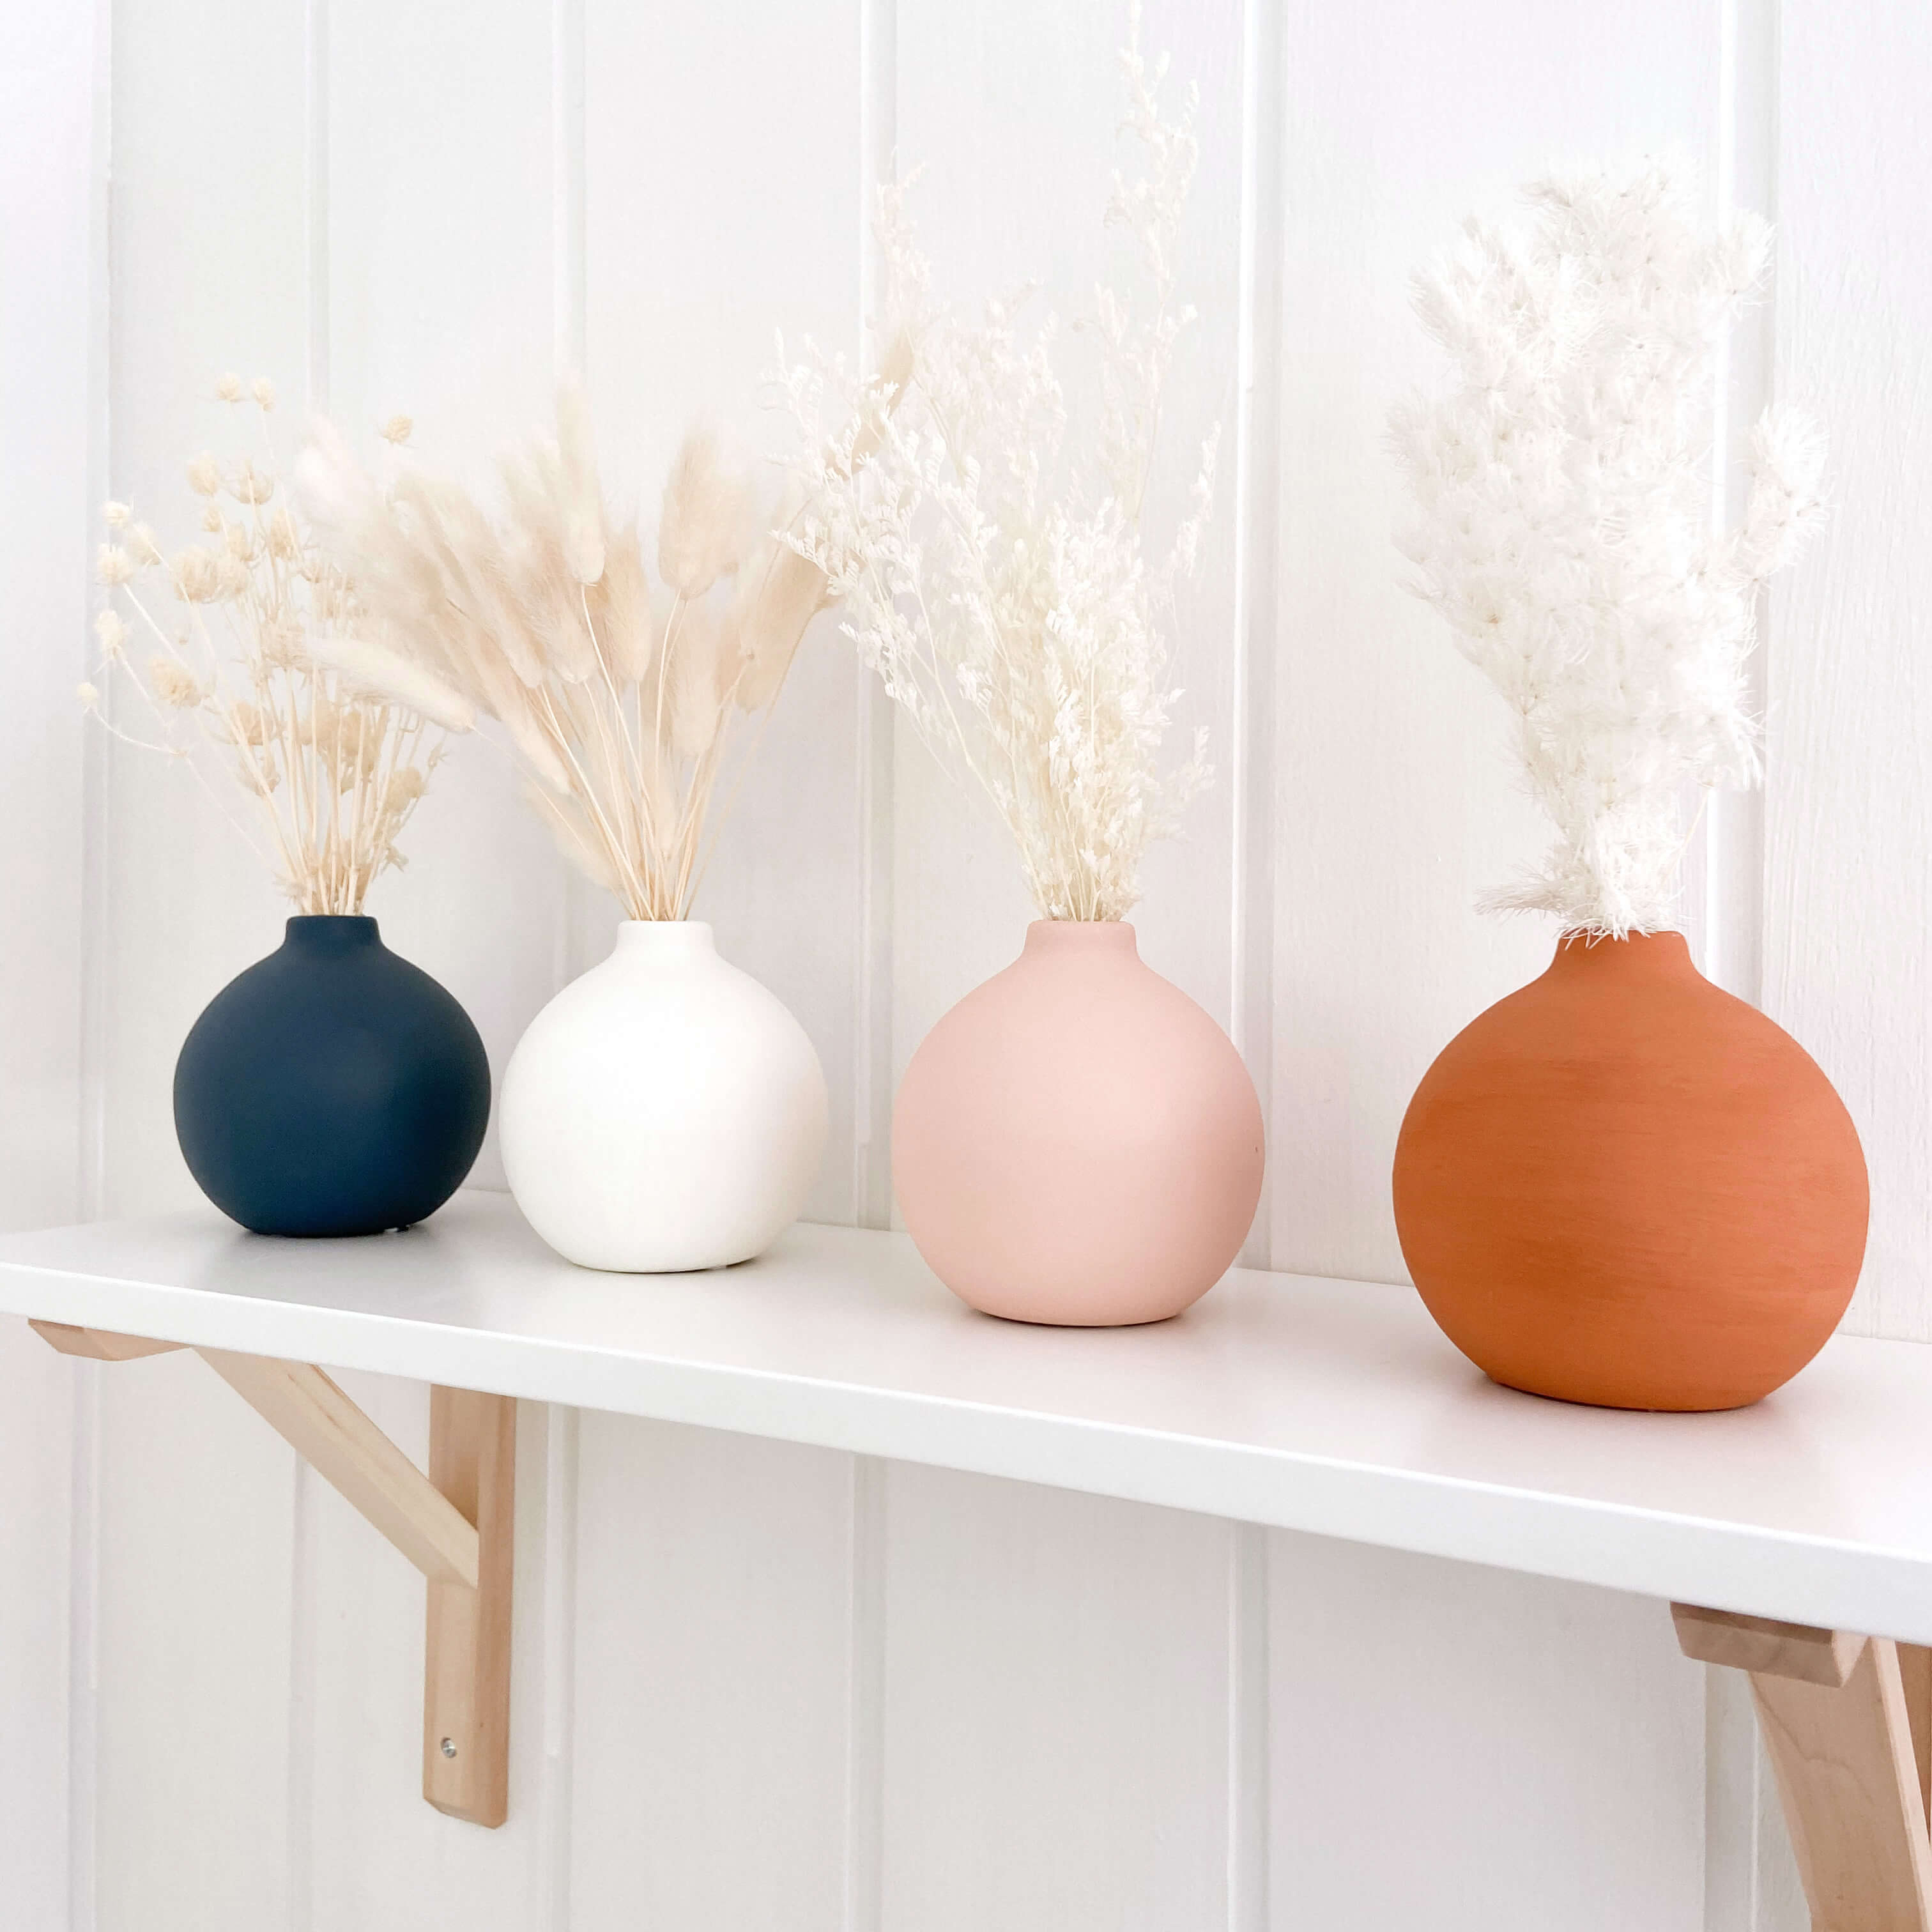 Kids nursery shelf with 4 vases sitting on it. They are navy, white, pink and terracotta. The vases have dried flowers in them